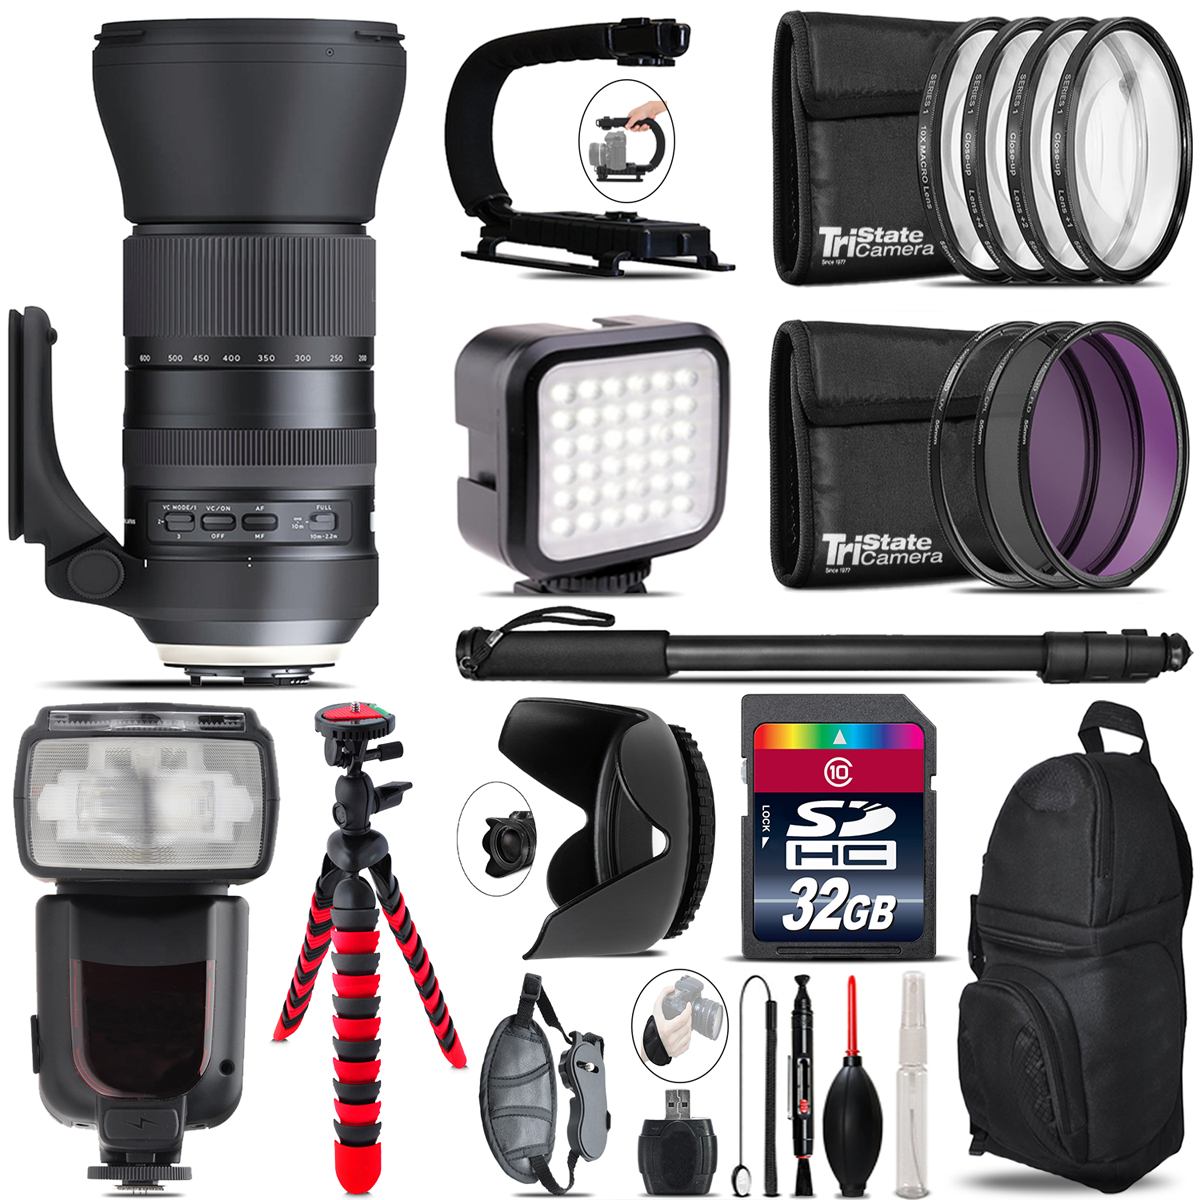 Tamron 150-600mm G2 for Canon - Video Kit + Pro Flash - 32GB Accessory Bundle *FREE SHIPPING*